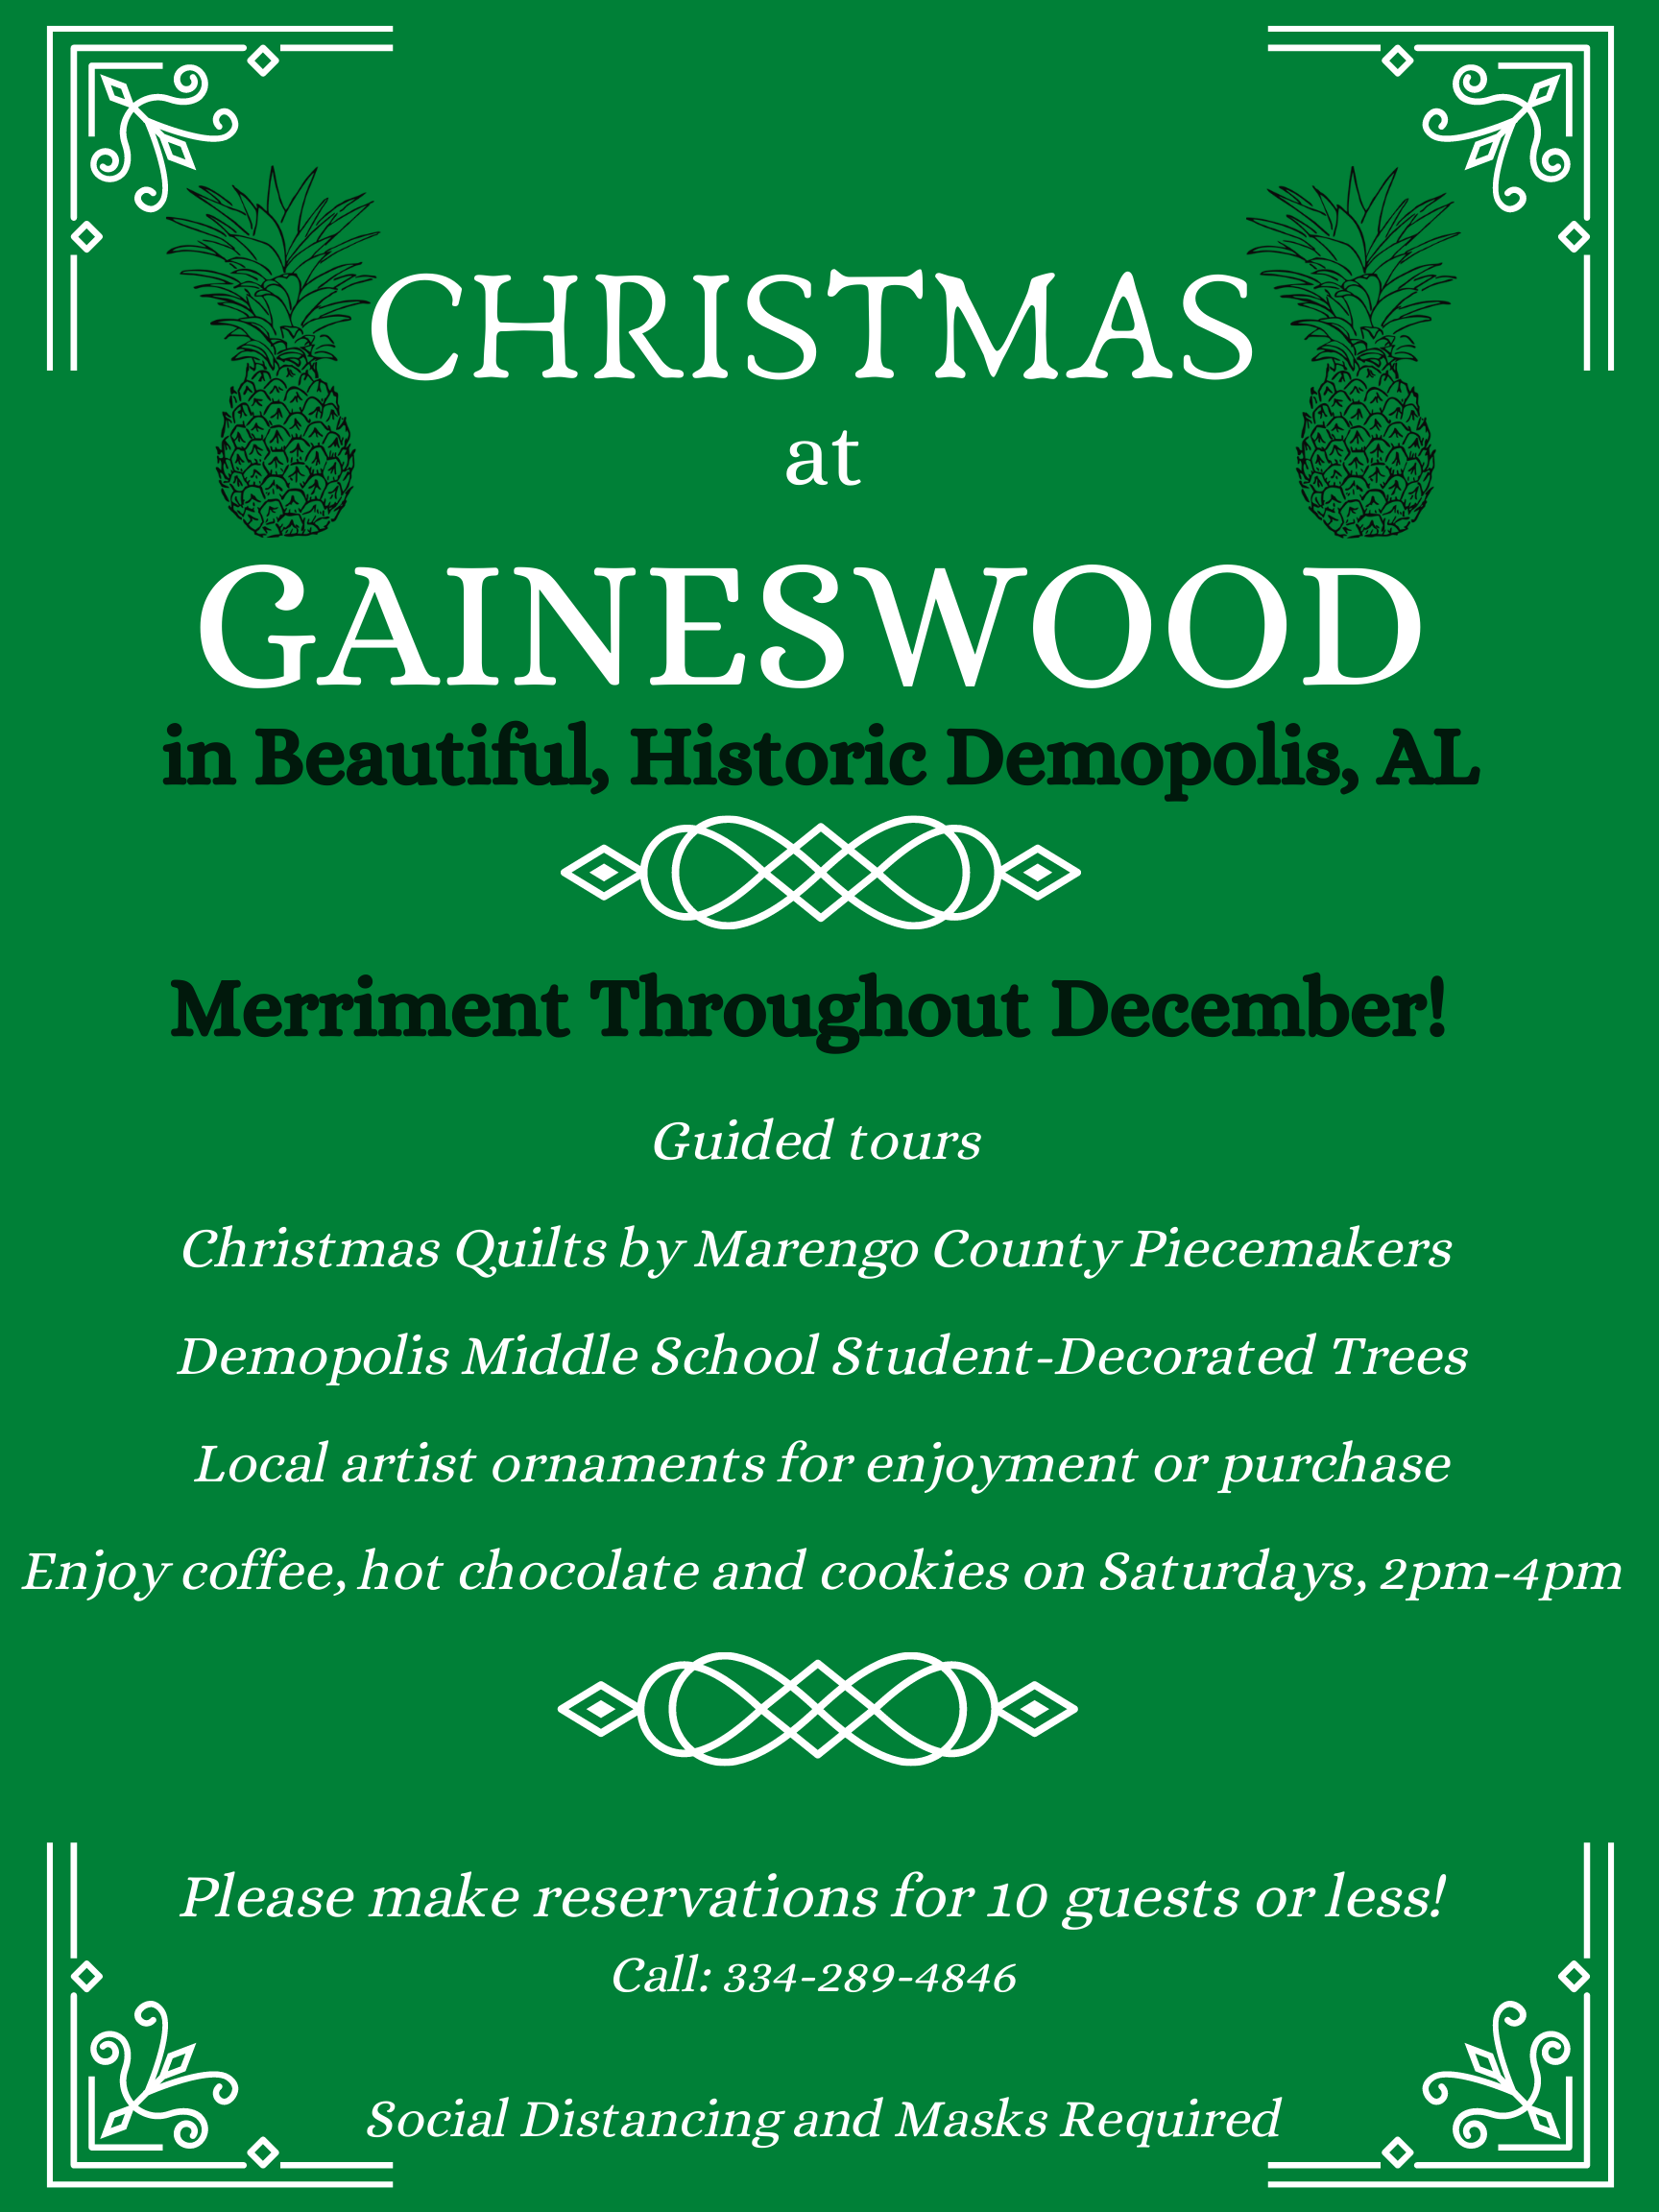 Christmas at Gaineswood